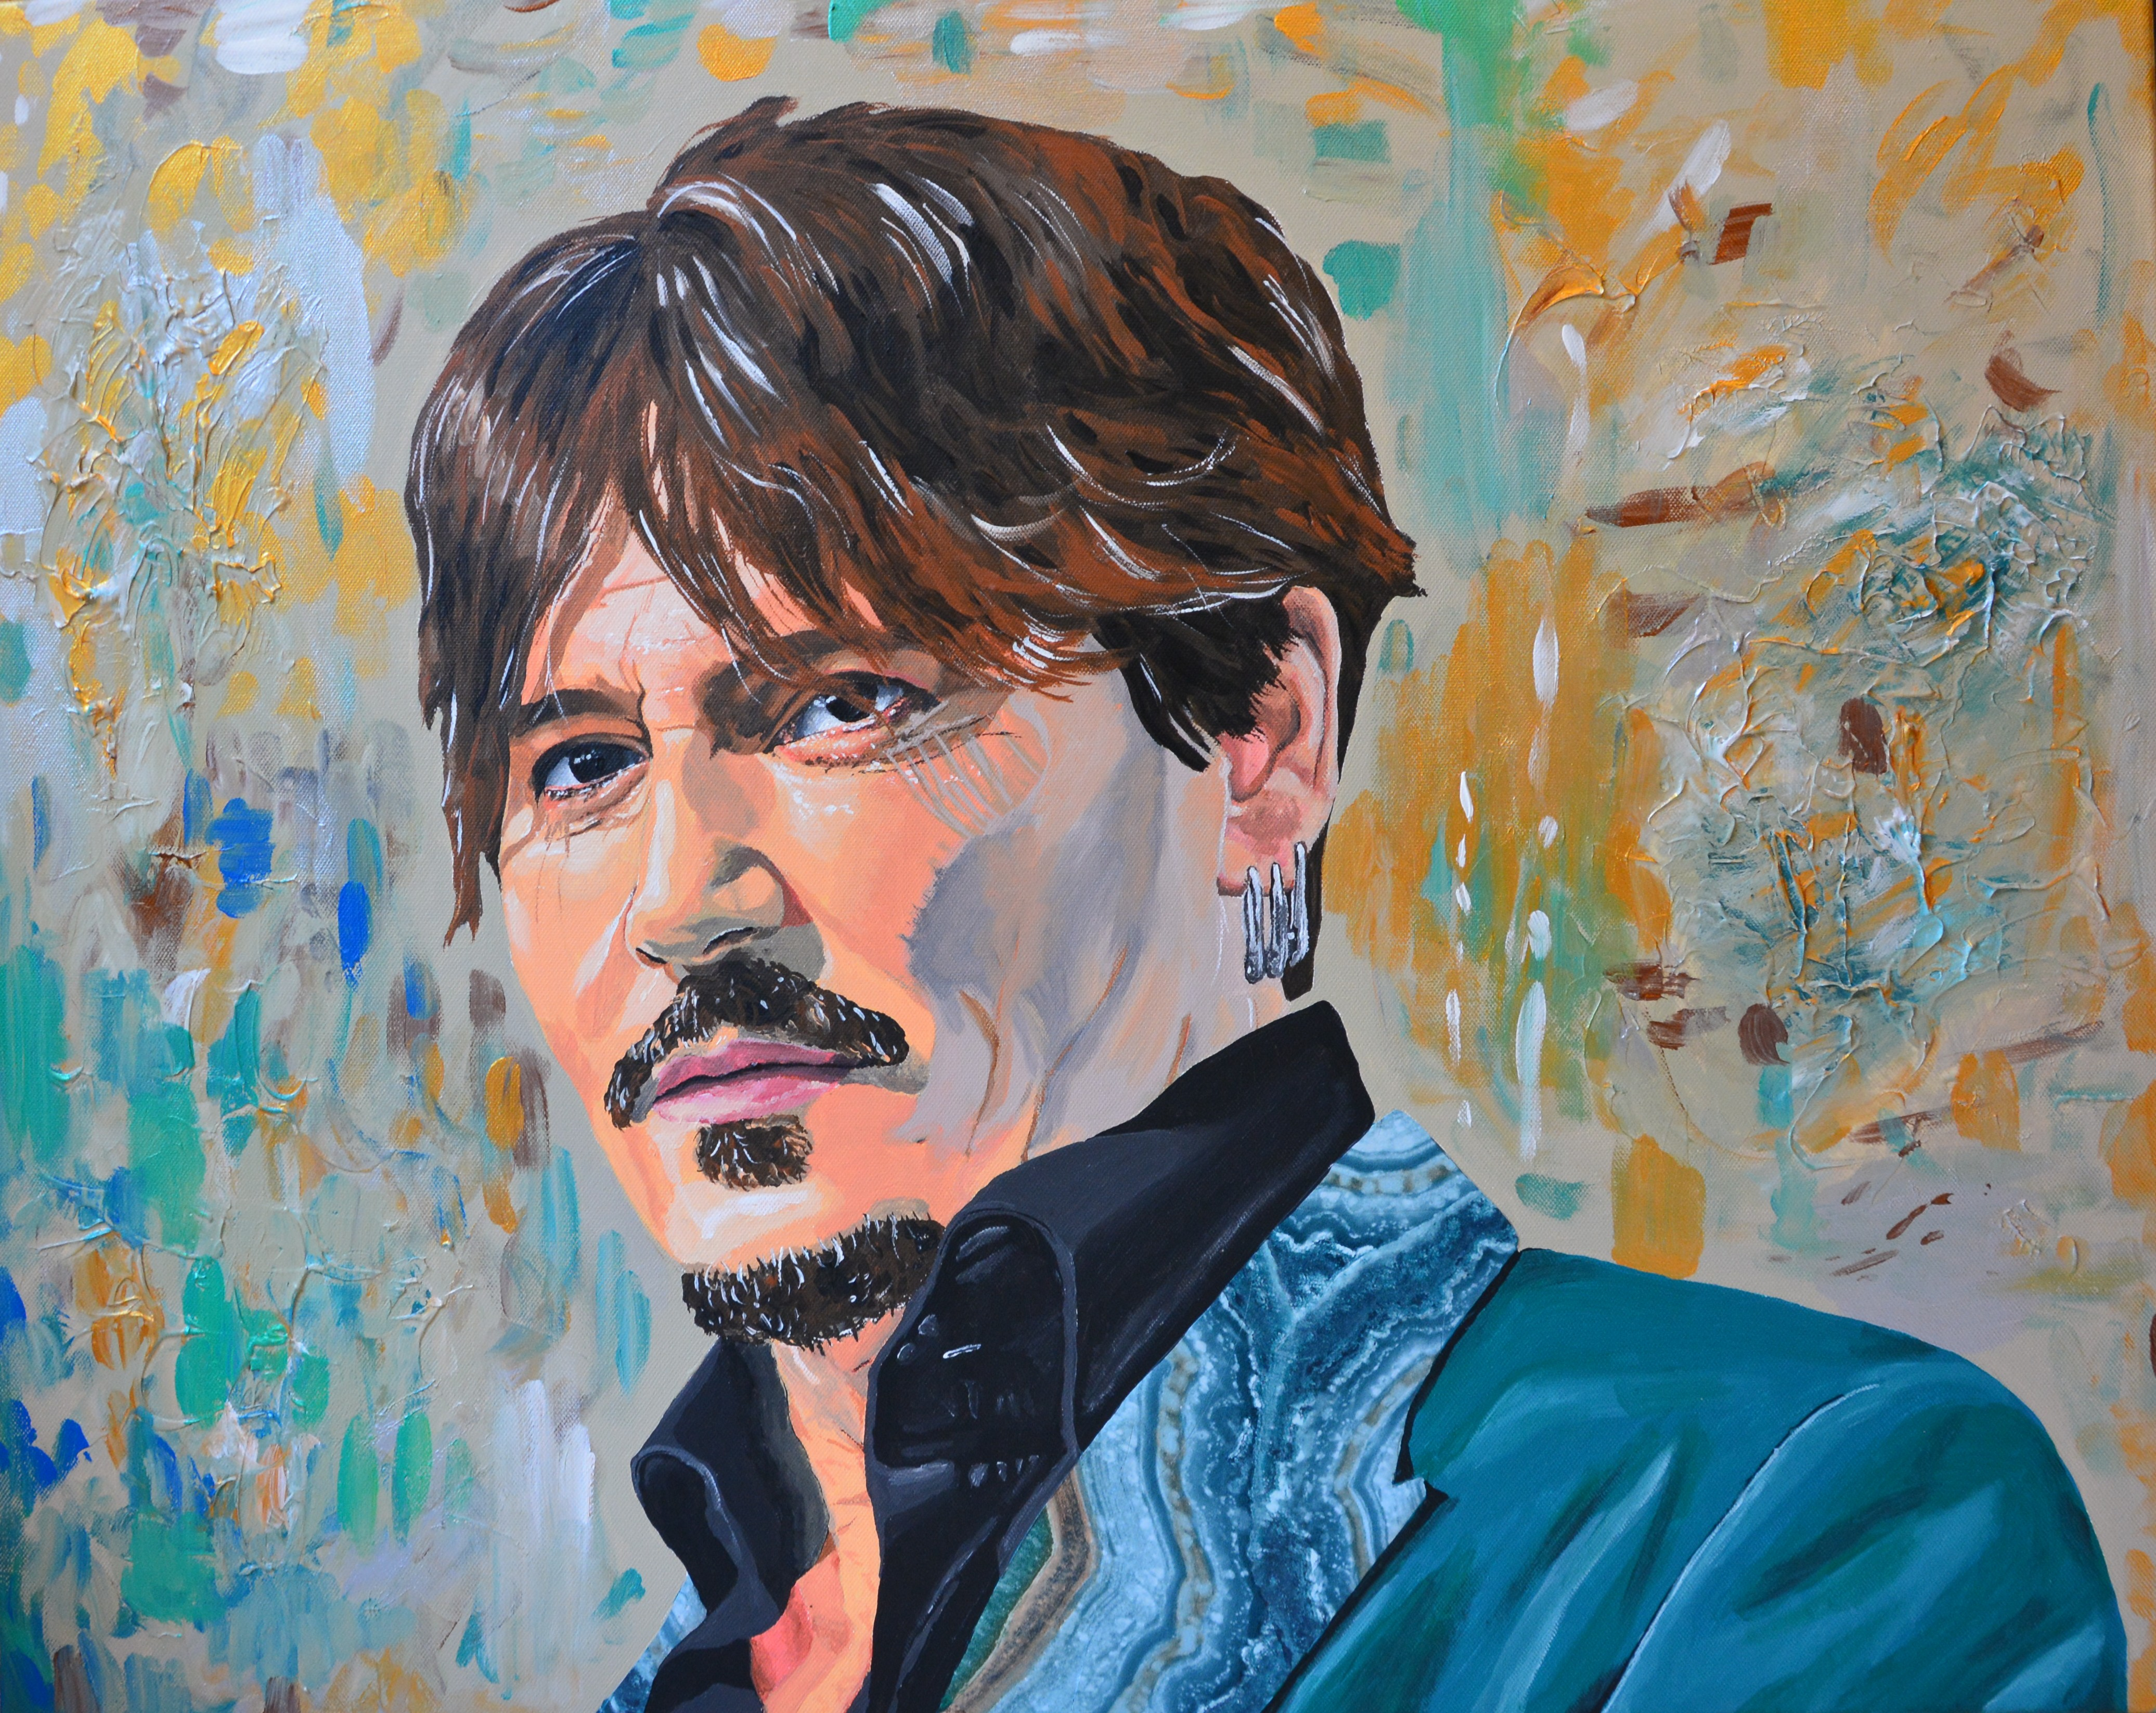 Johnny Depp, the artist, 2019, acrylics and collage on canvas